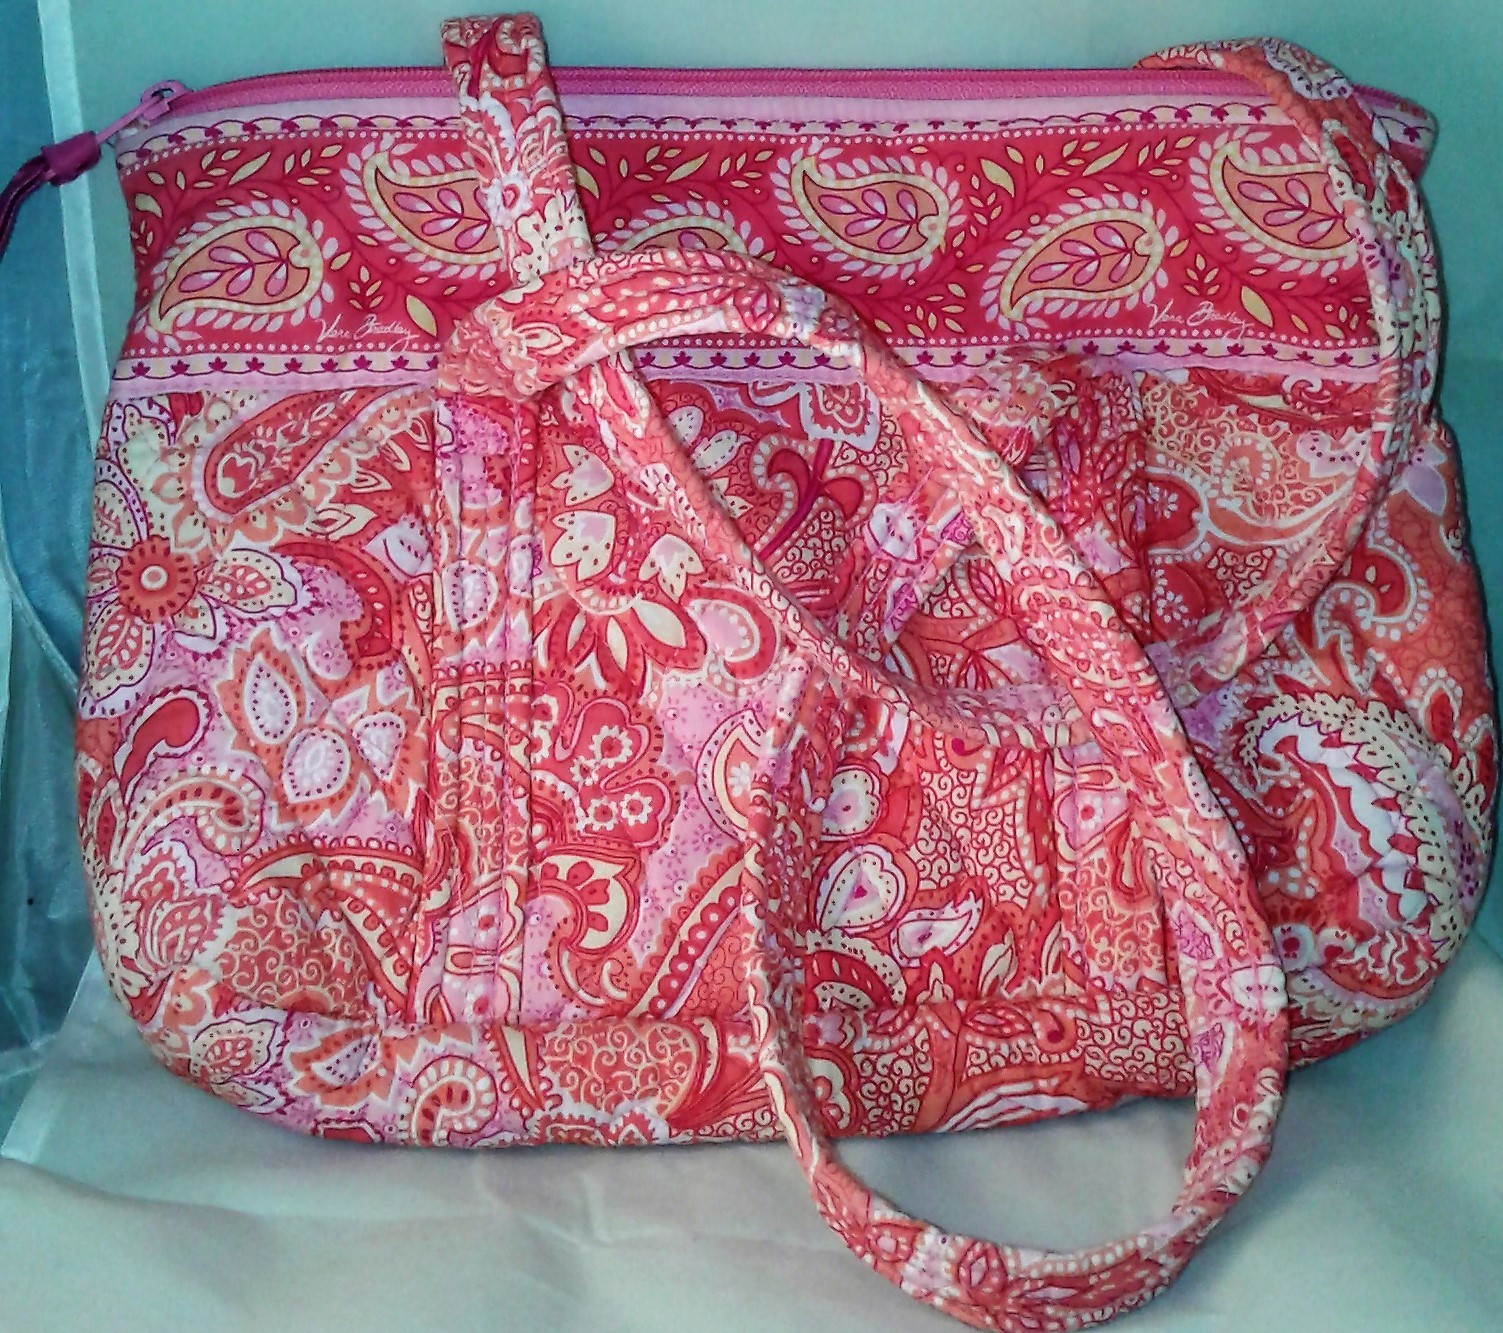 Vera bradley pink paisleyflowers quilted and 50 similar items vera bradley pink paisleyflowers quilted and 50 similar items veramian mightylinksfo